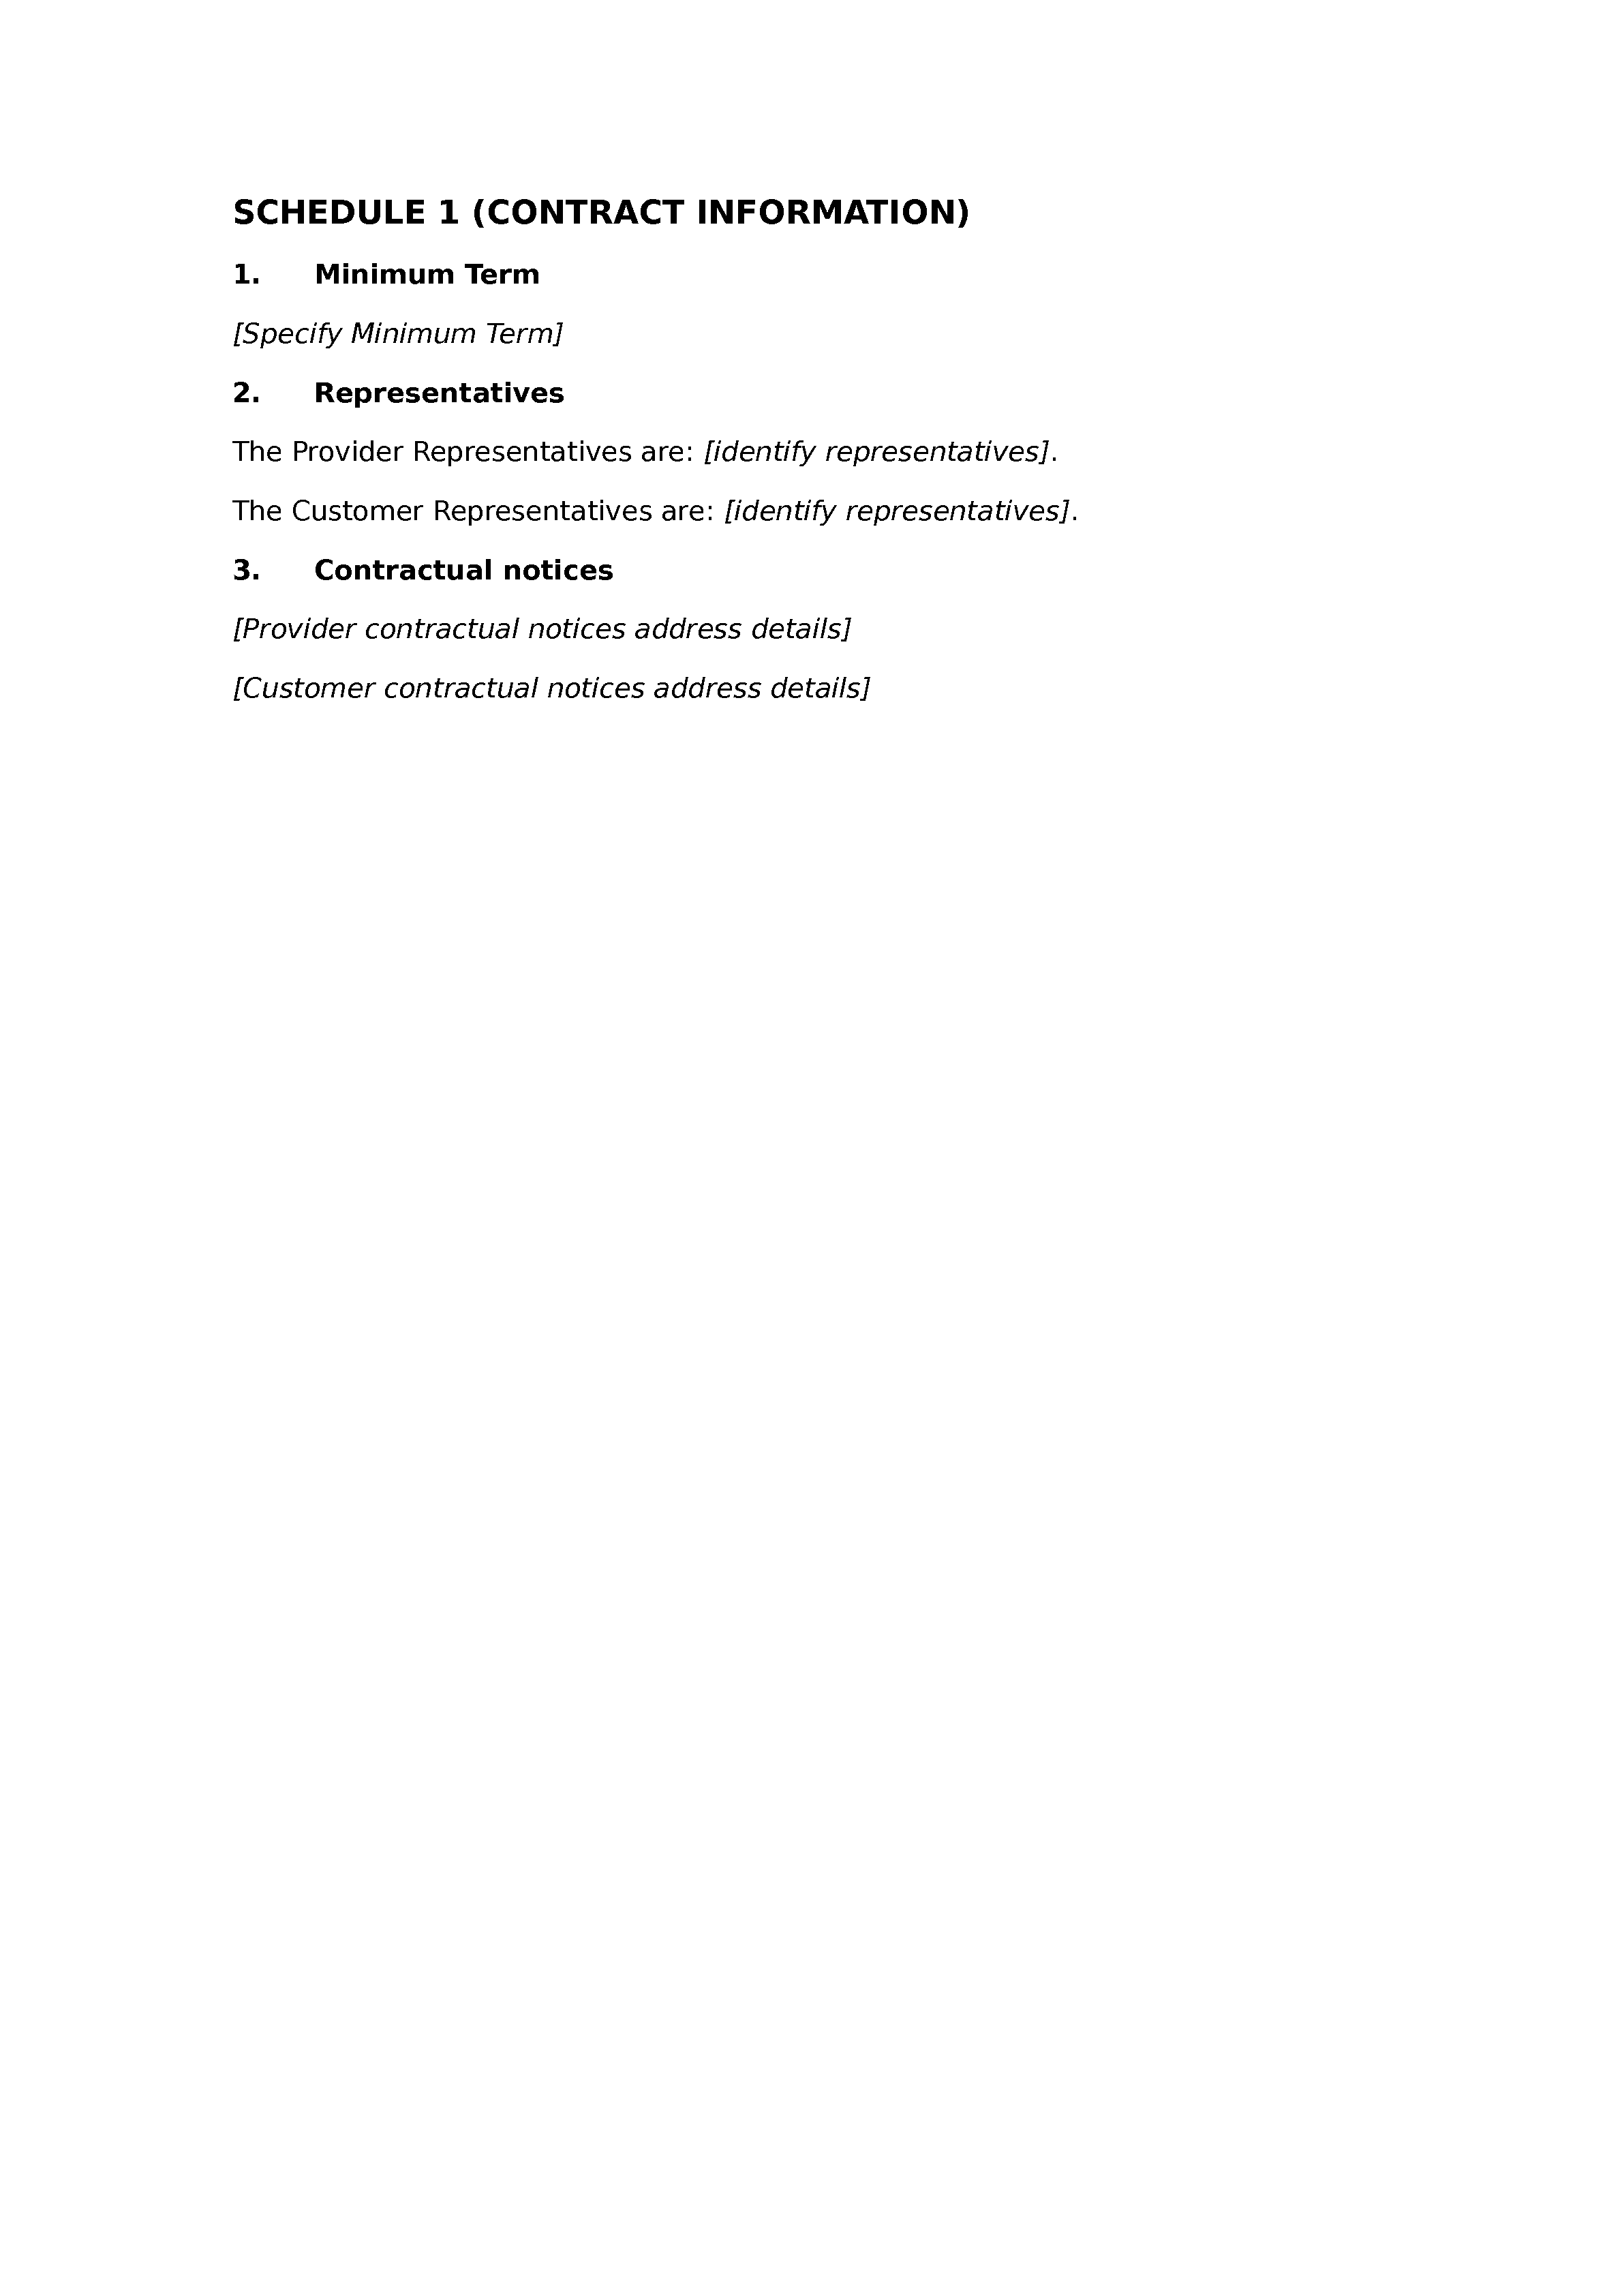 Web services agreement document preview